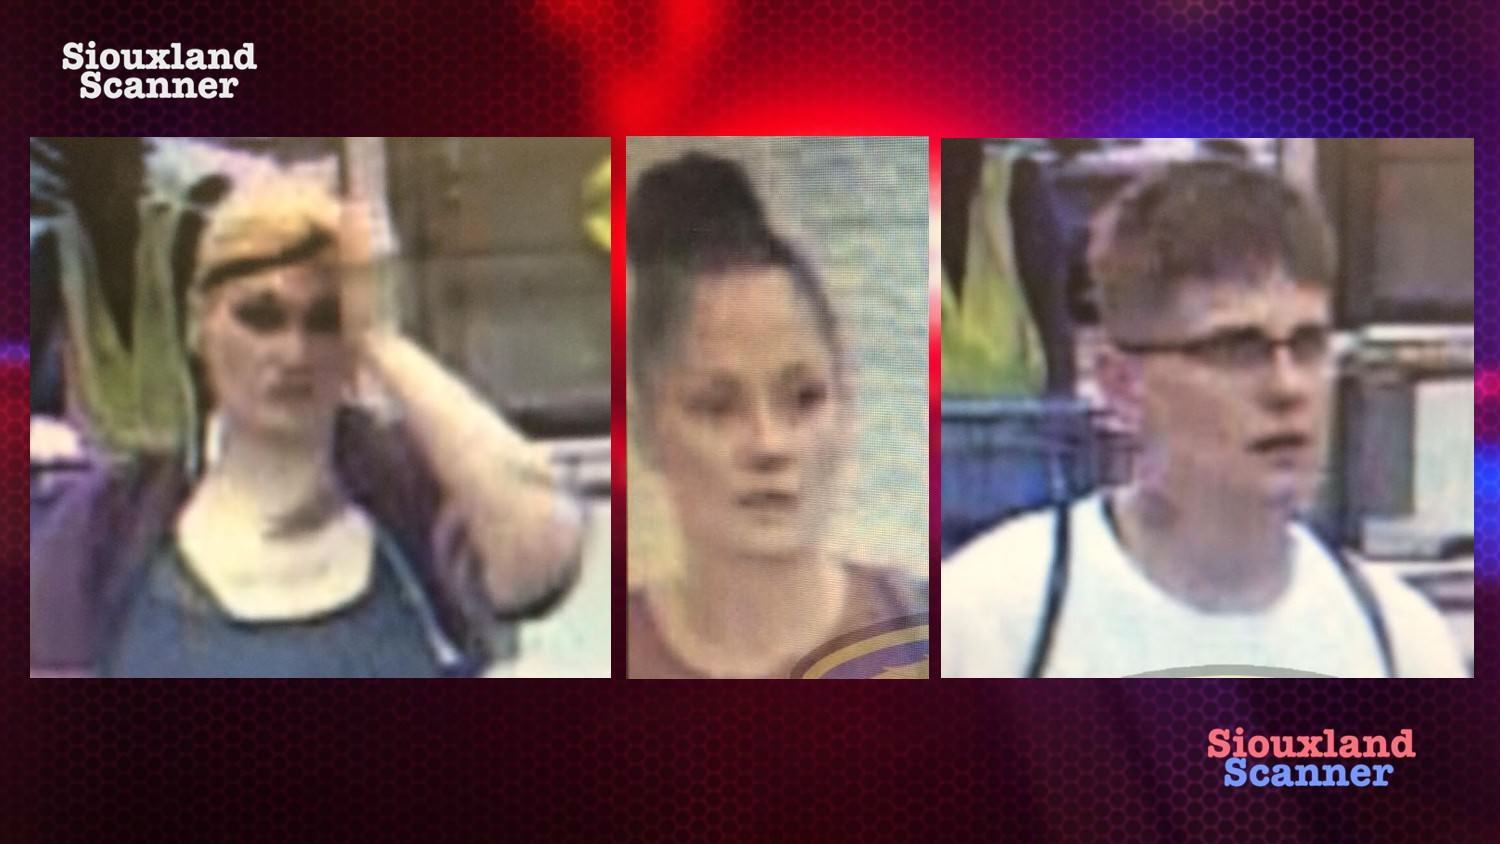 Identified South Sioux City searching for Persons of Interest in Theft